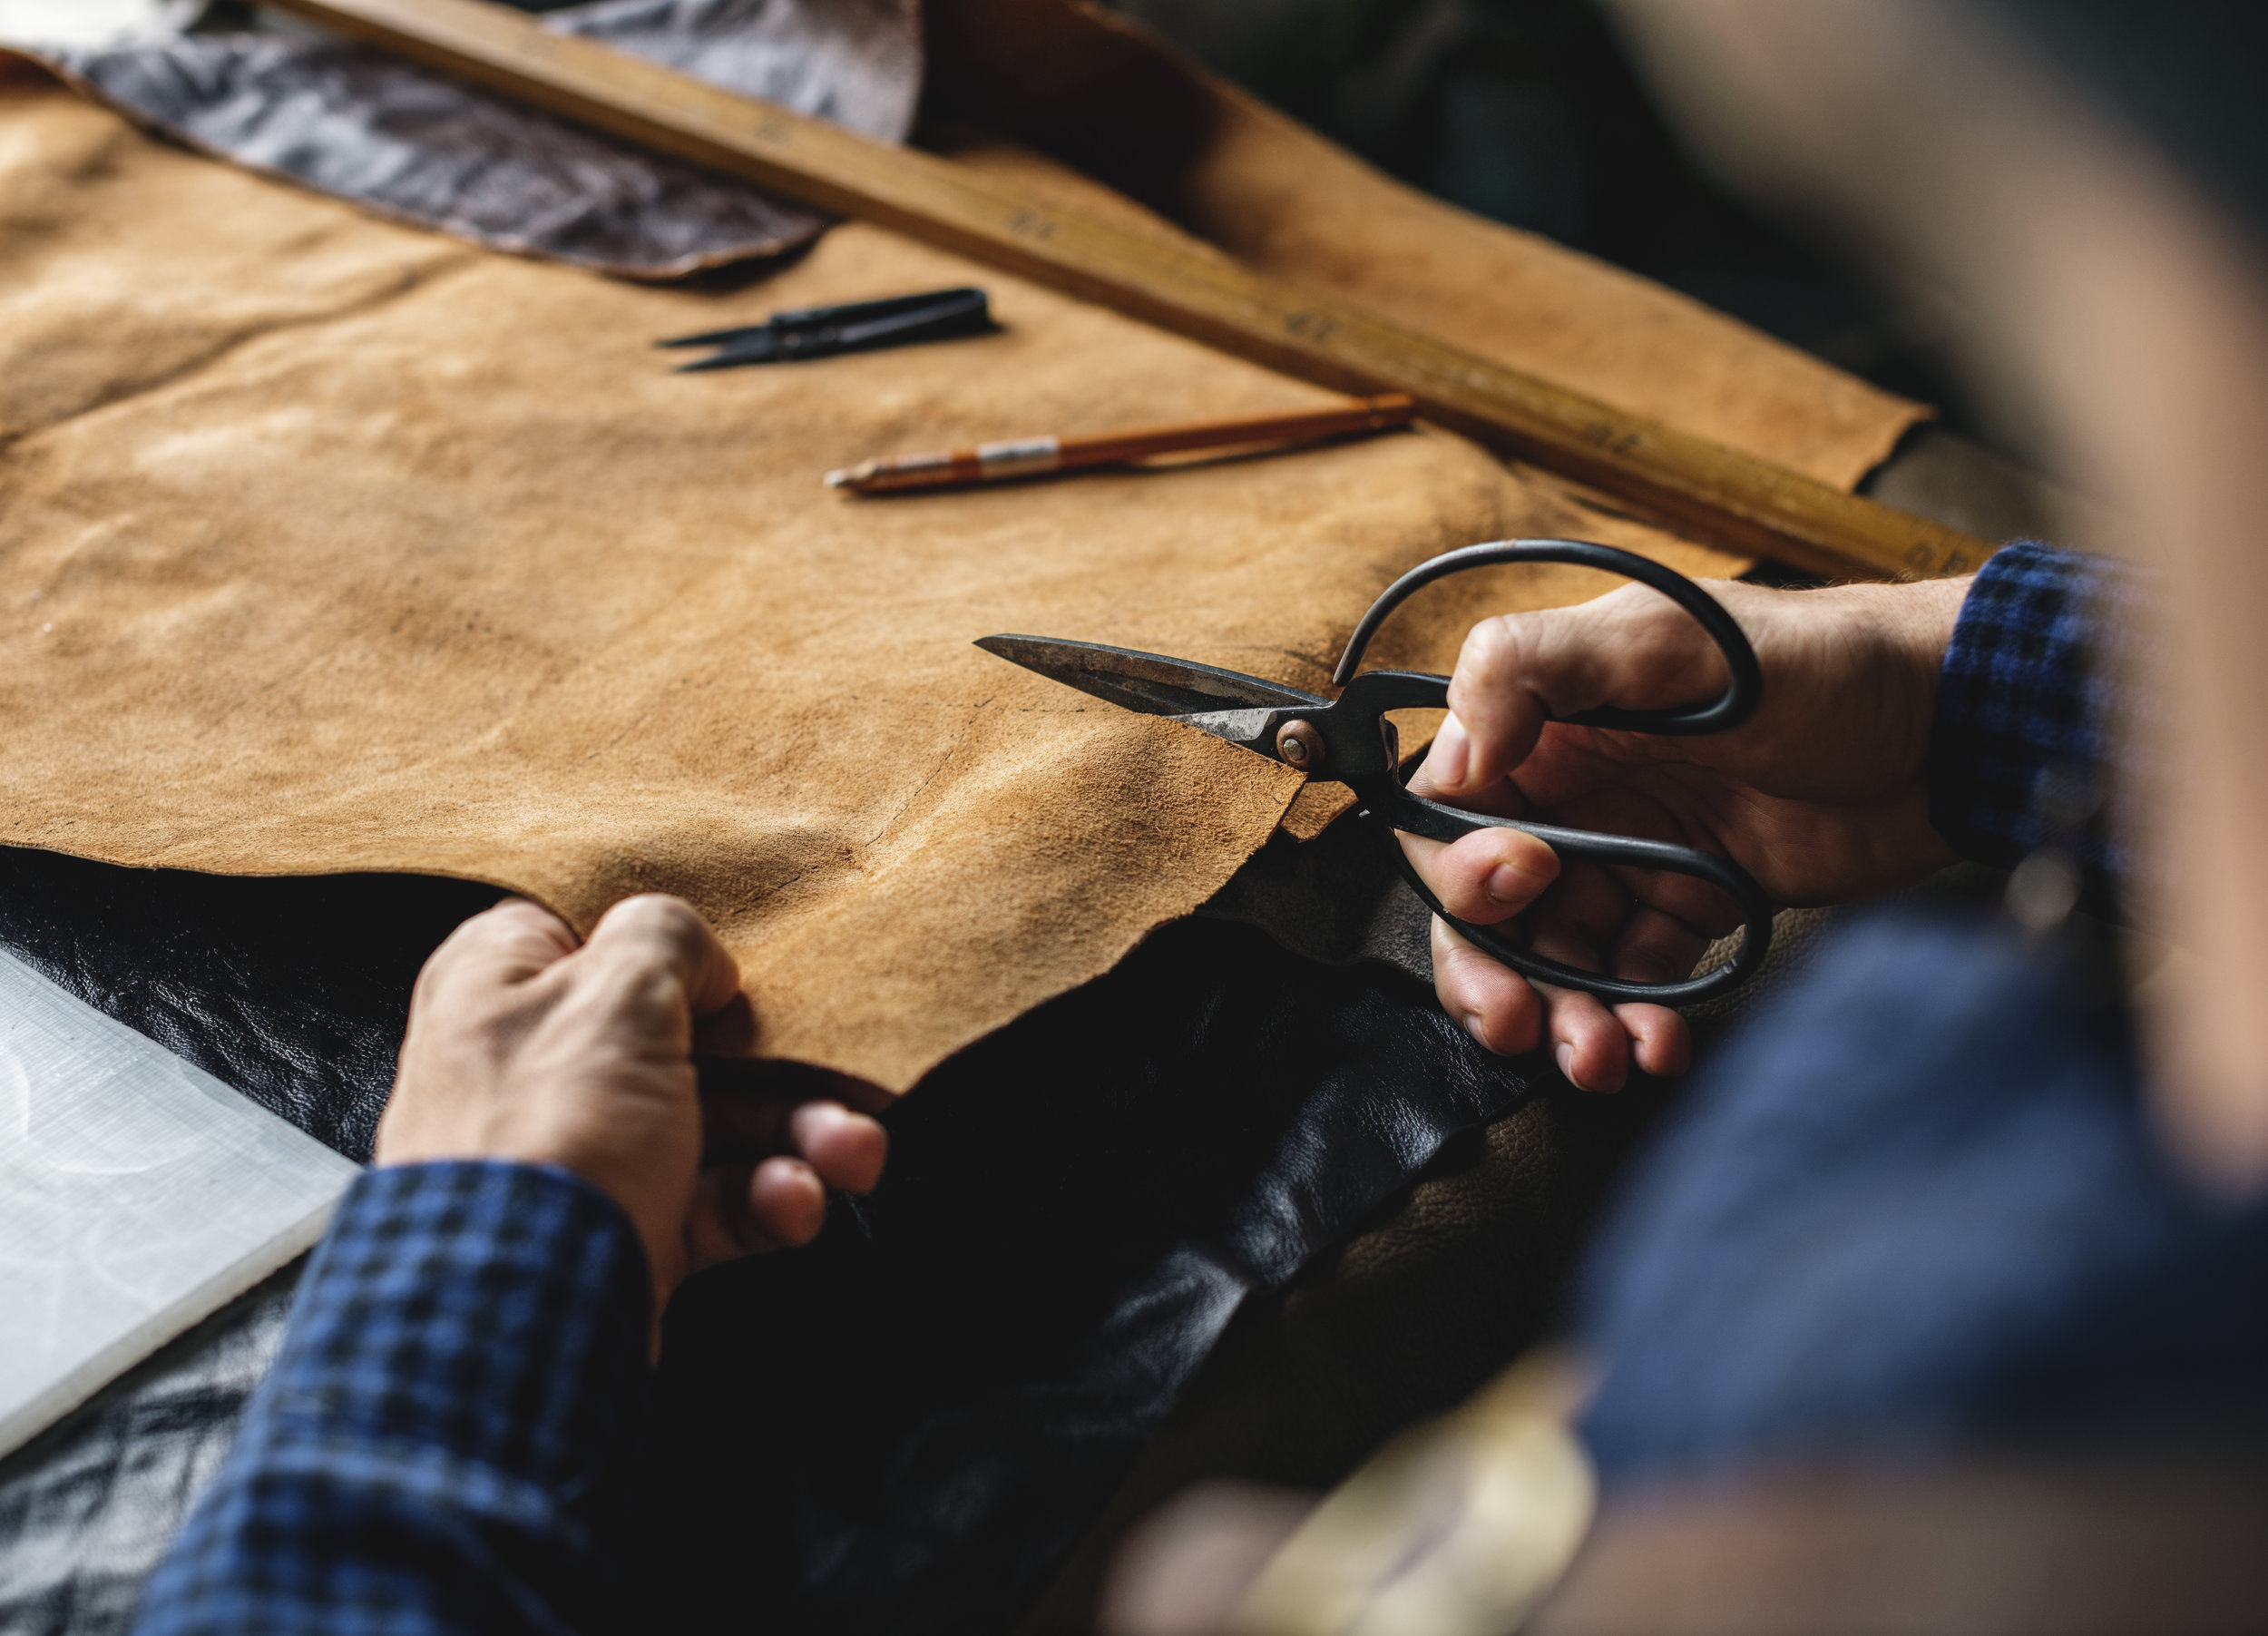 closeup-of-craftsman-cutting-leather-handicraft-P6HNJFZ.jpg